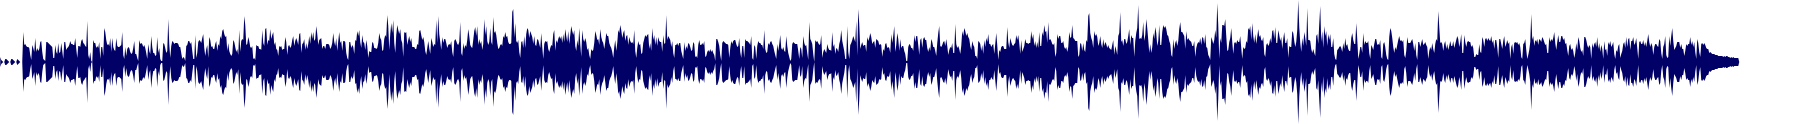 waveform of track #85935